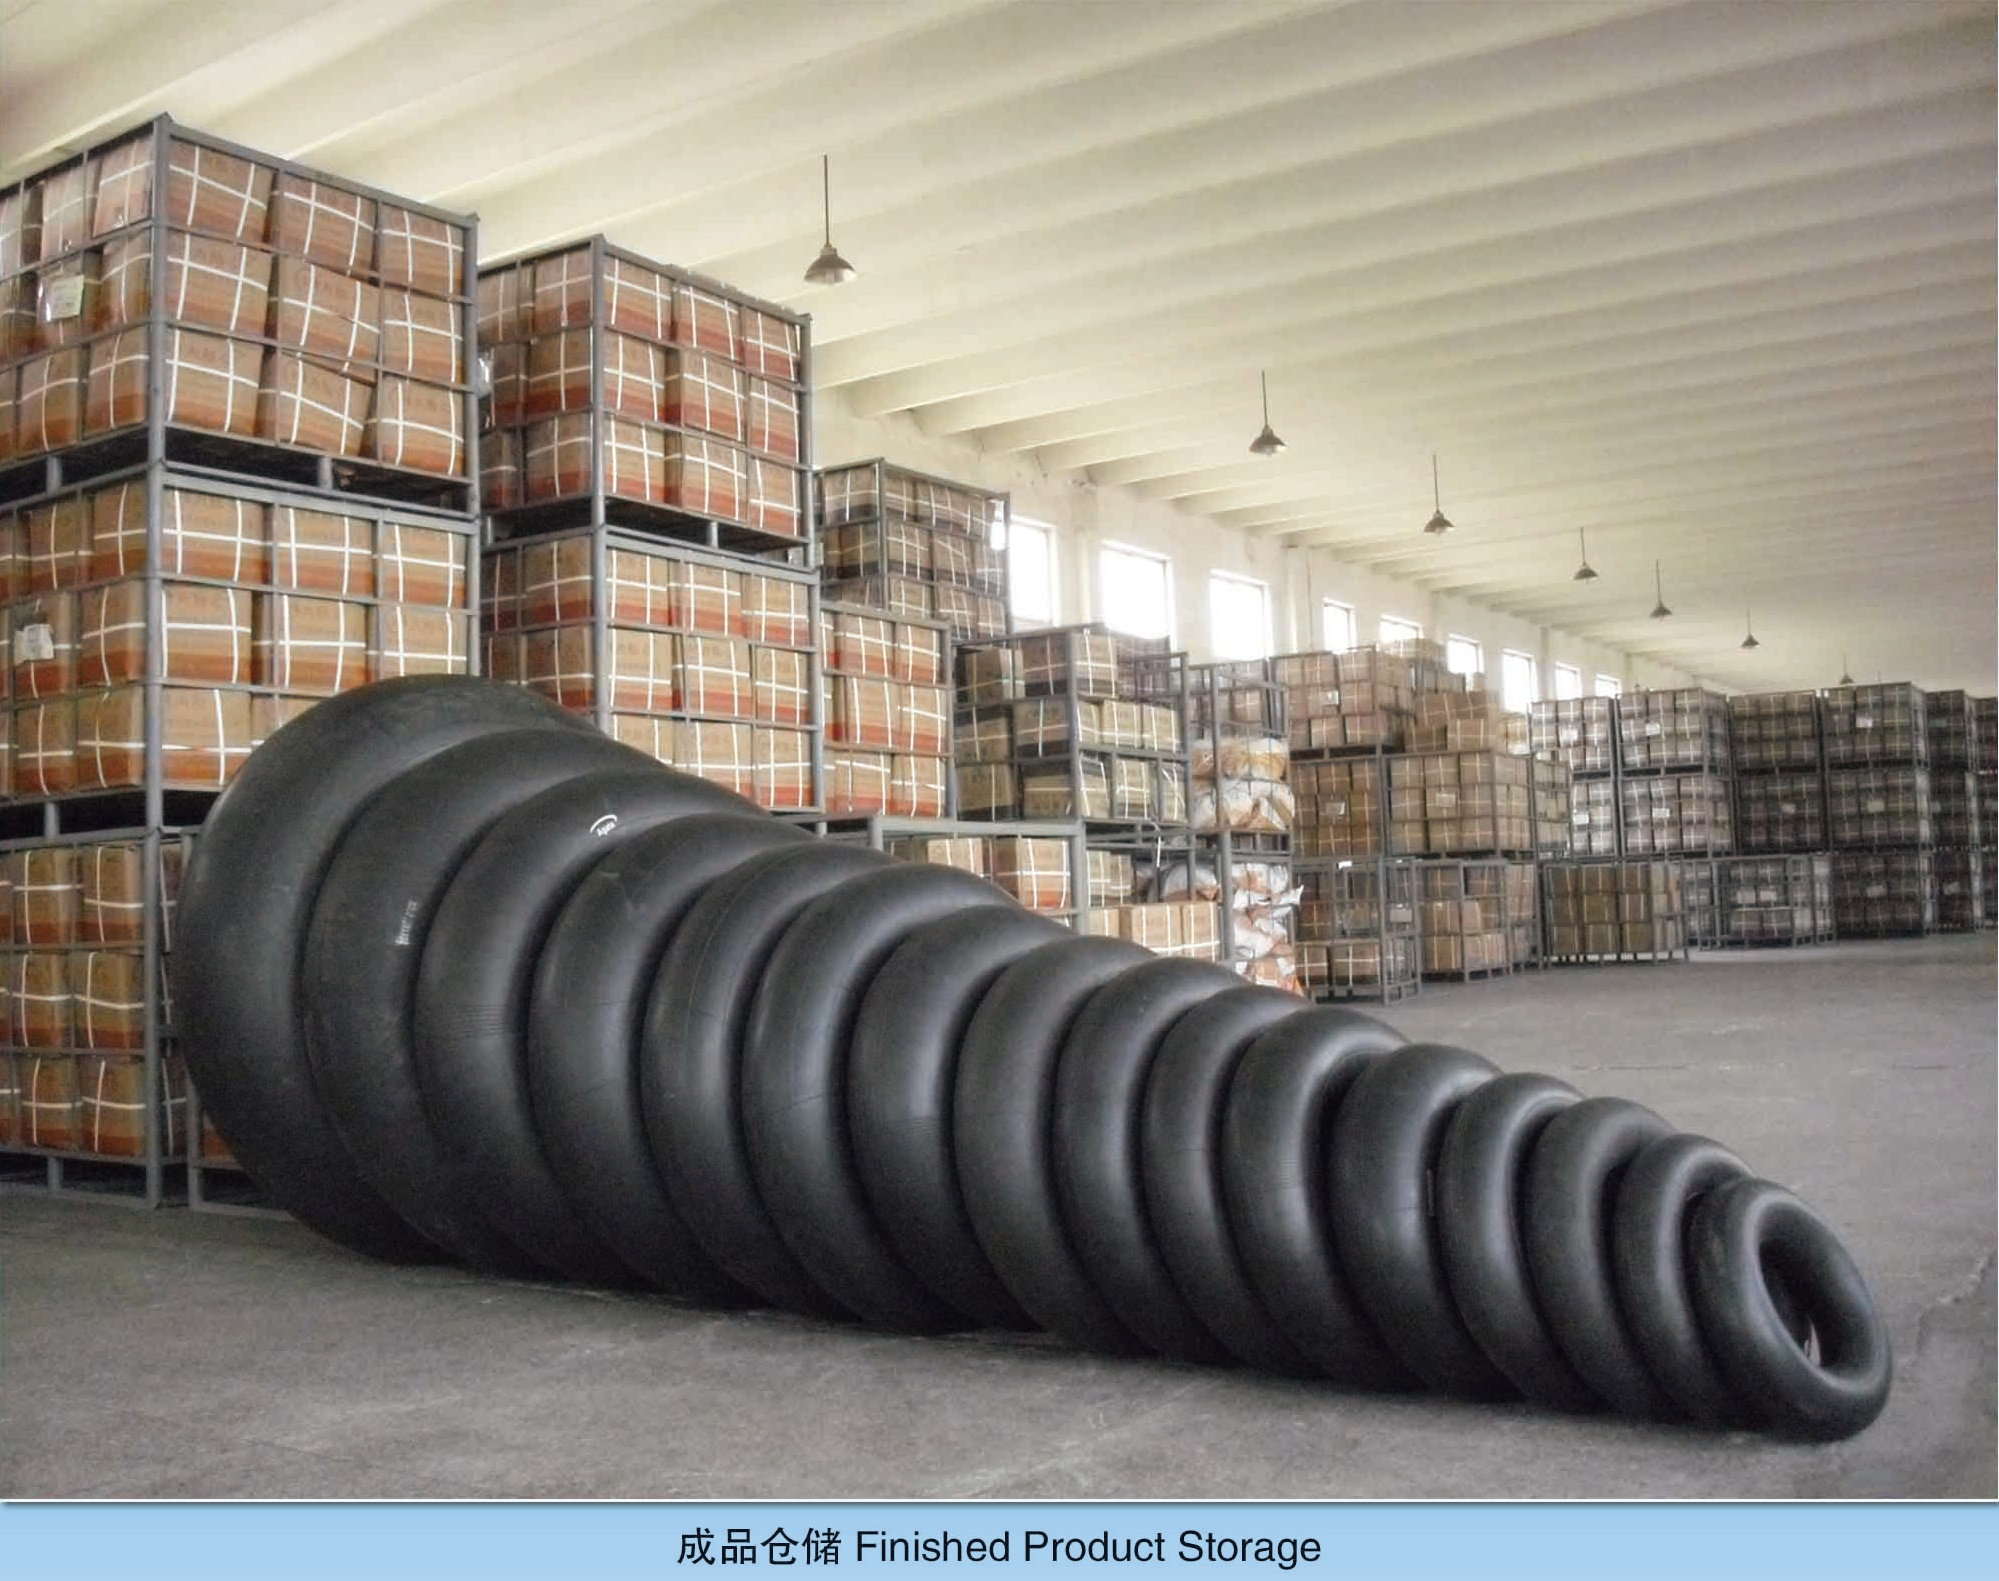 THE STORAGE FOR TUBES